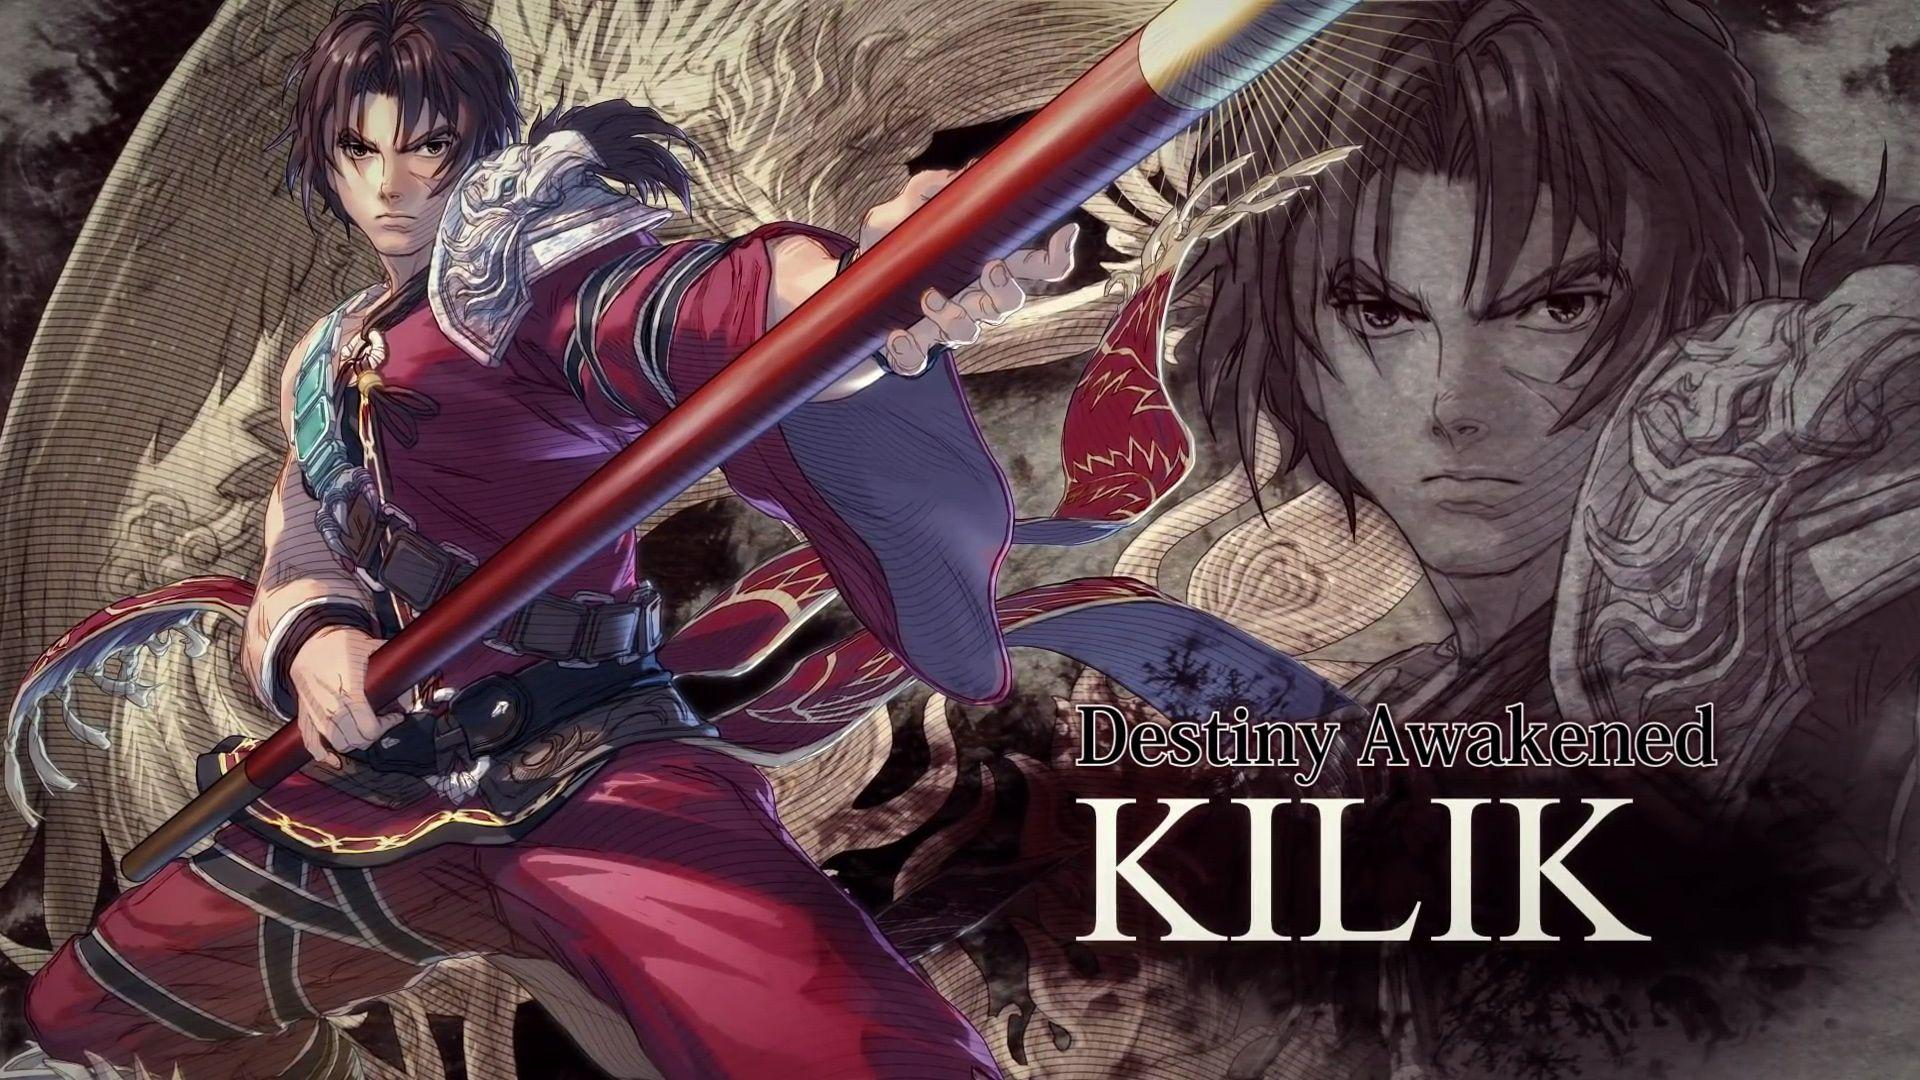 Kilik. Wallpapers from Soulcalibur VI